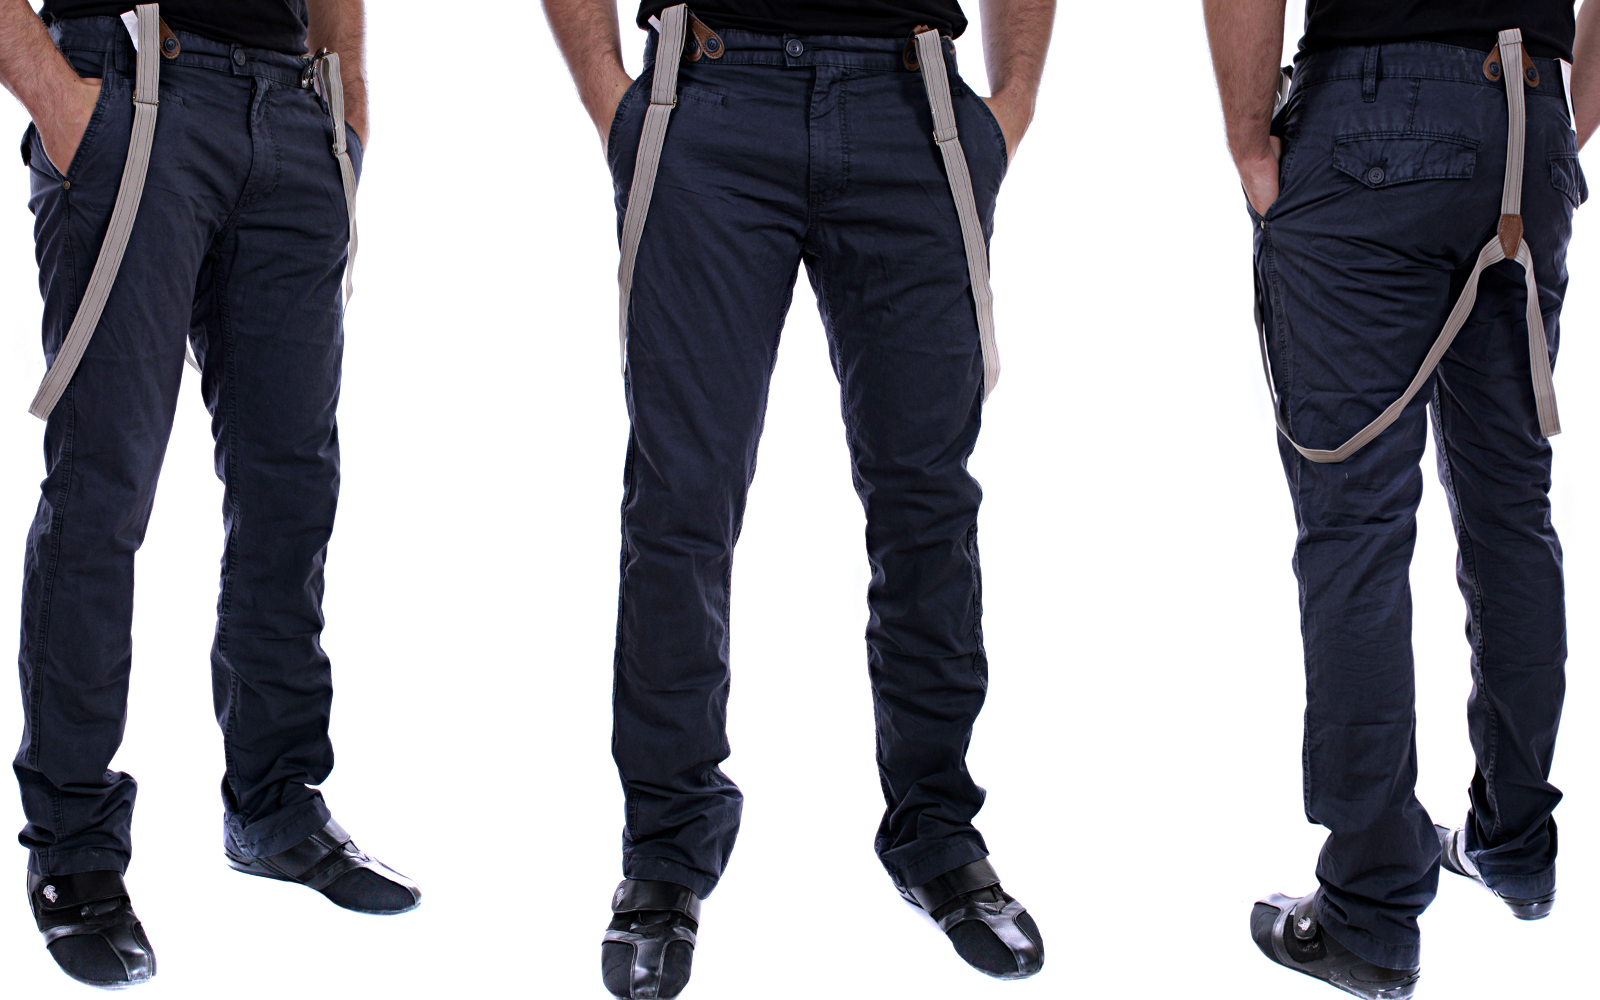 urban surface chino trousers braces men 39 s pants trousers. Black Bedroom Furniture Sets. Home Design Ideas